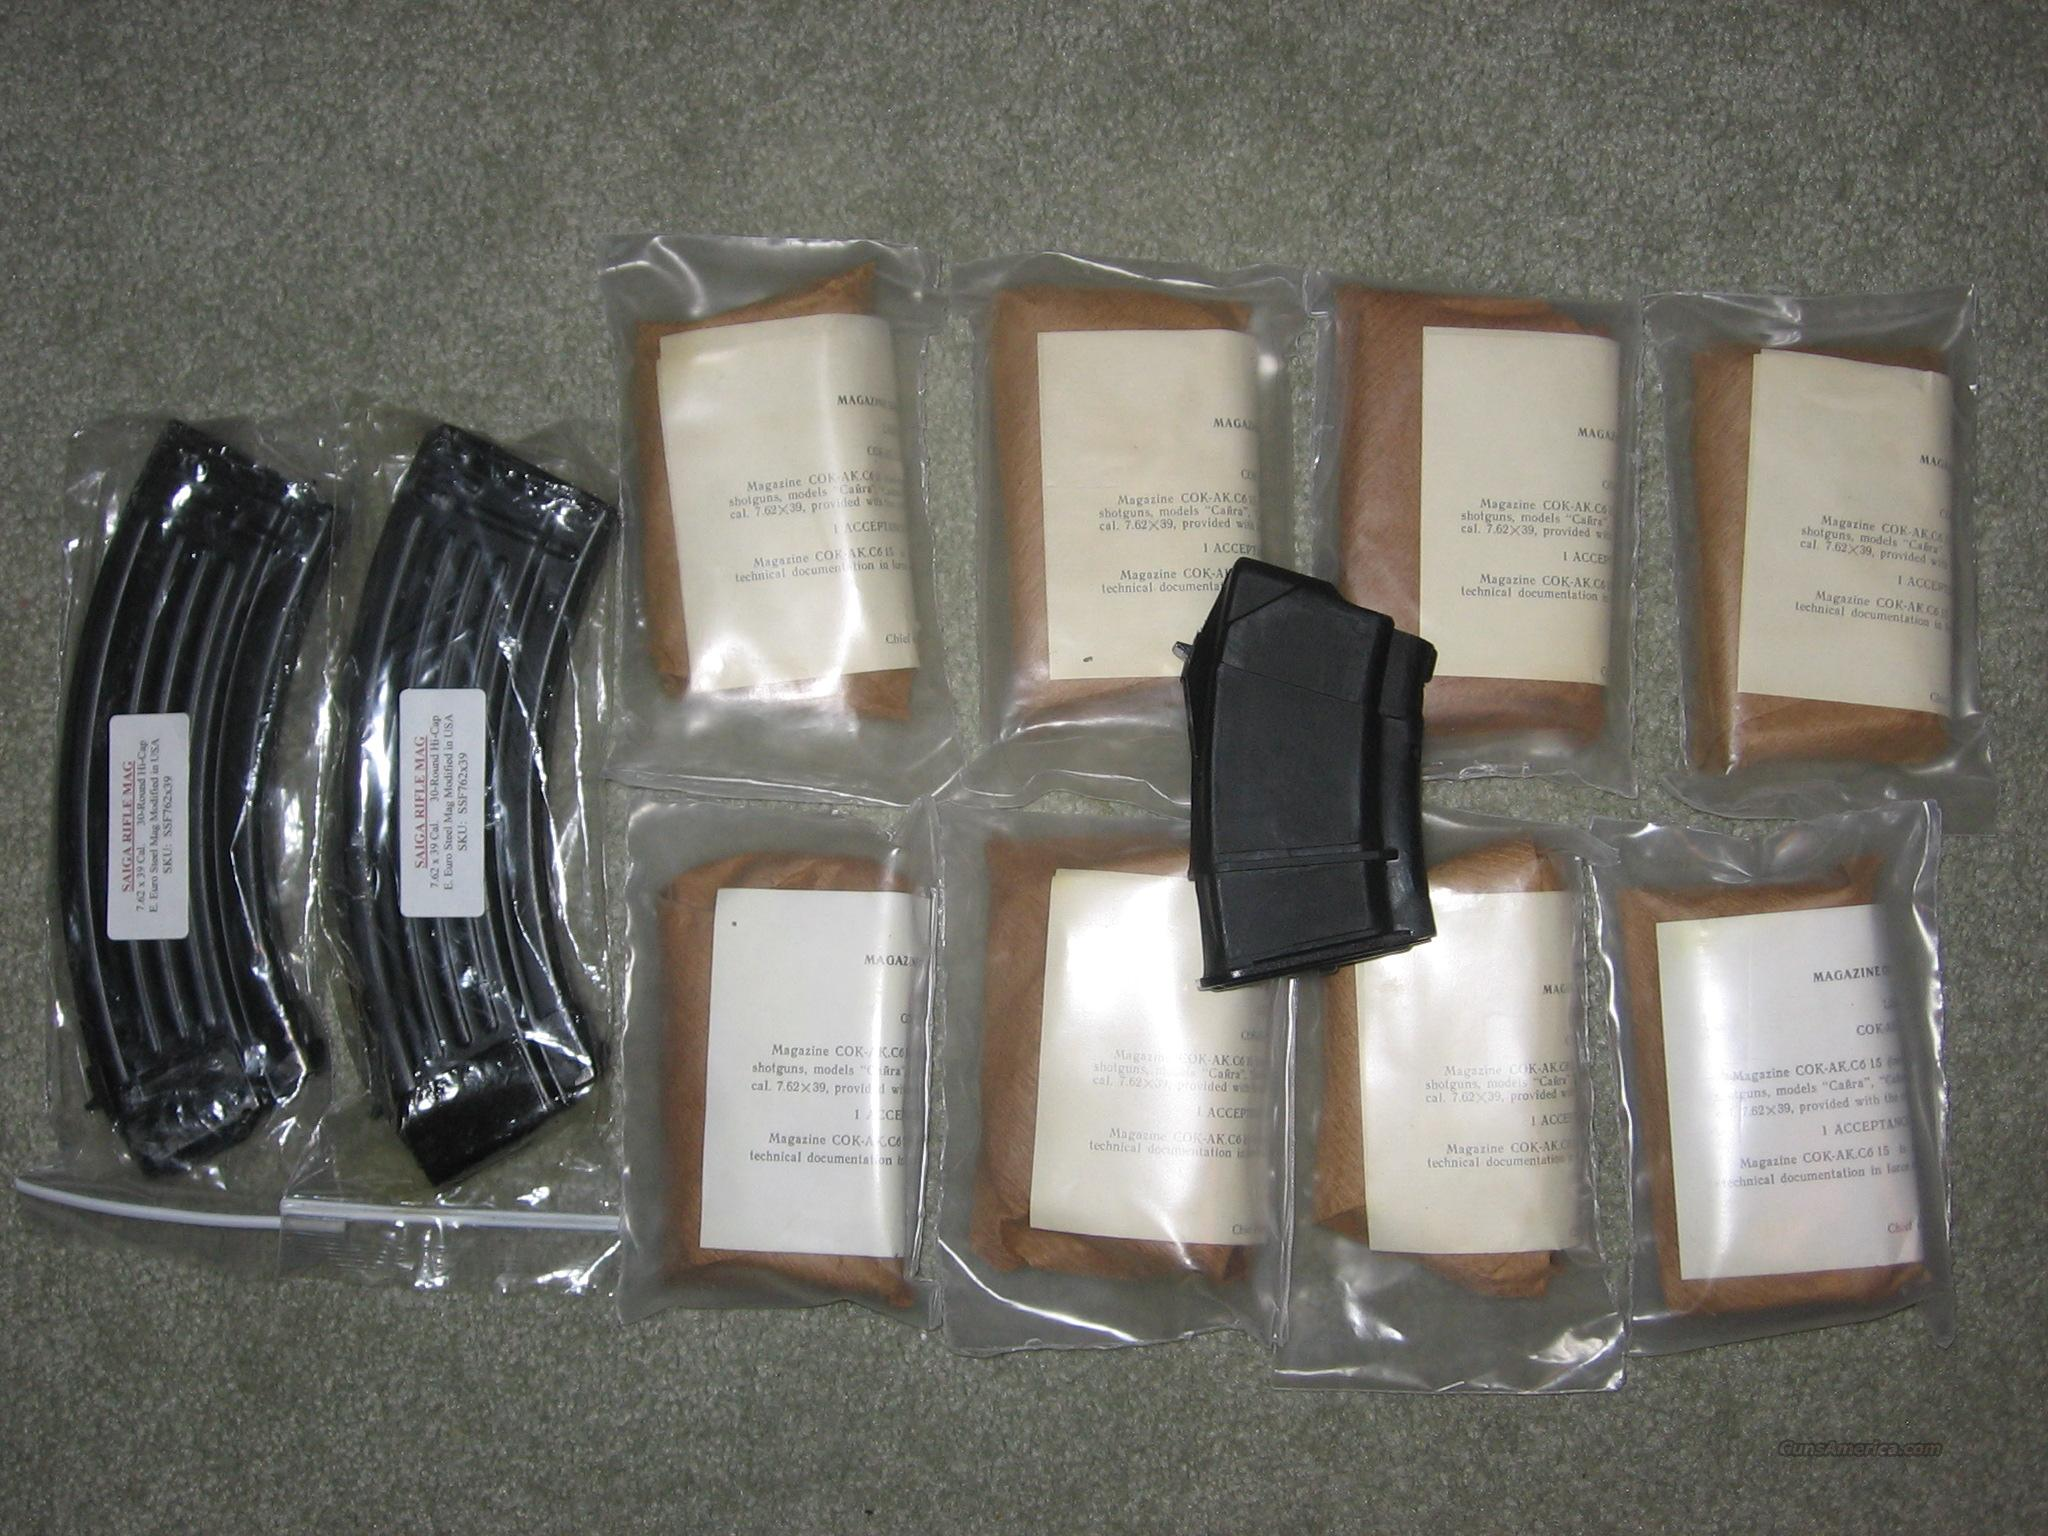 9 Saiga RAA IZH Factory 10 Round Mags + 2 New 30 Round Mags  Non-Guns > Magazines & Clips > Rifle Magazines > AK Family